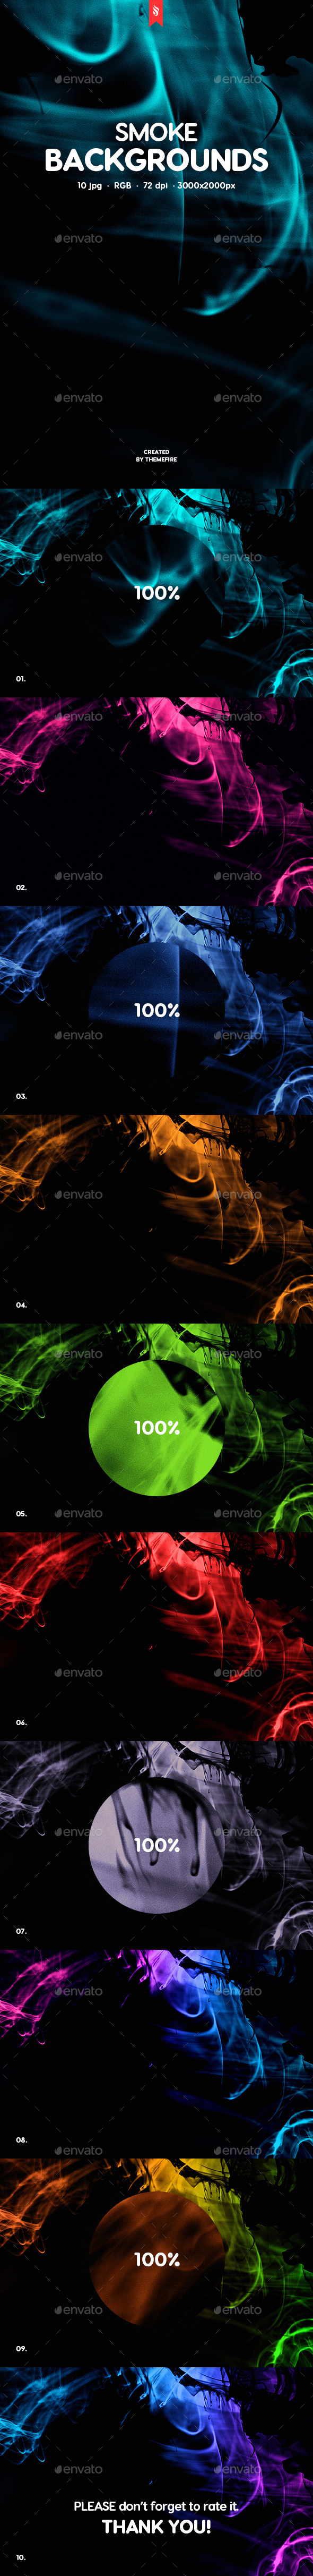 Smoke Backgrounds - Backgrounds Graphics